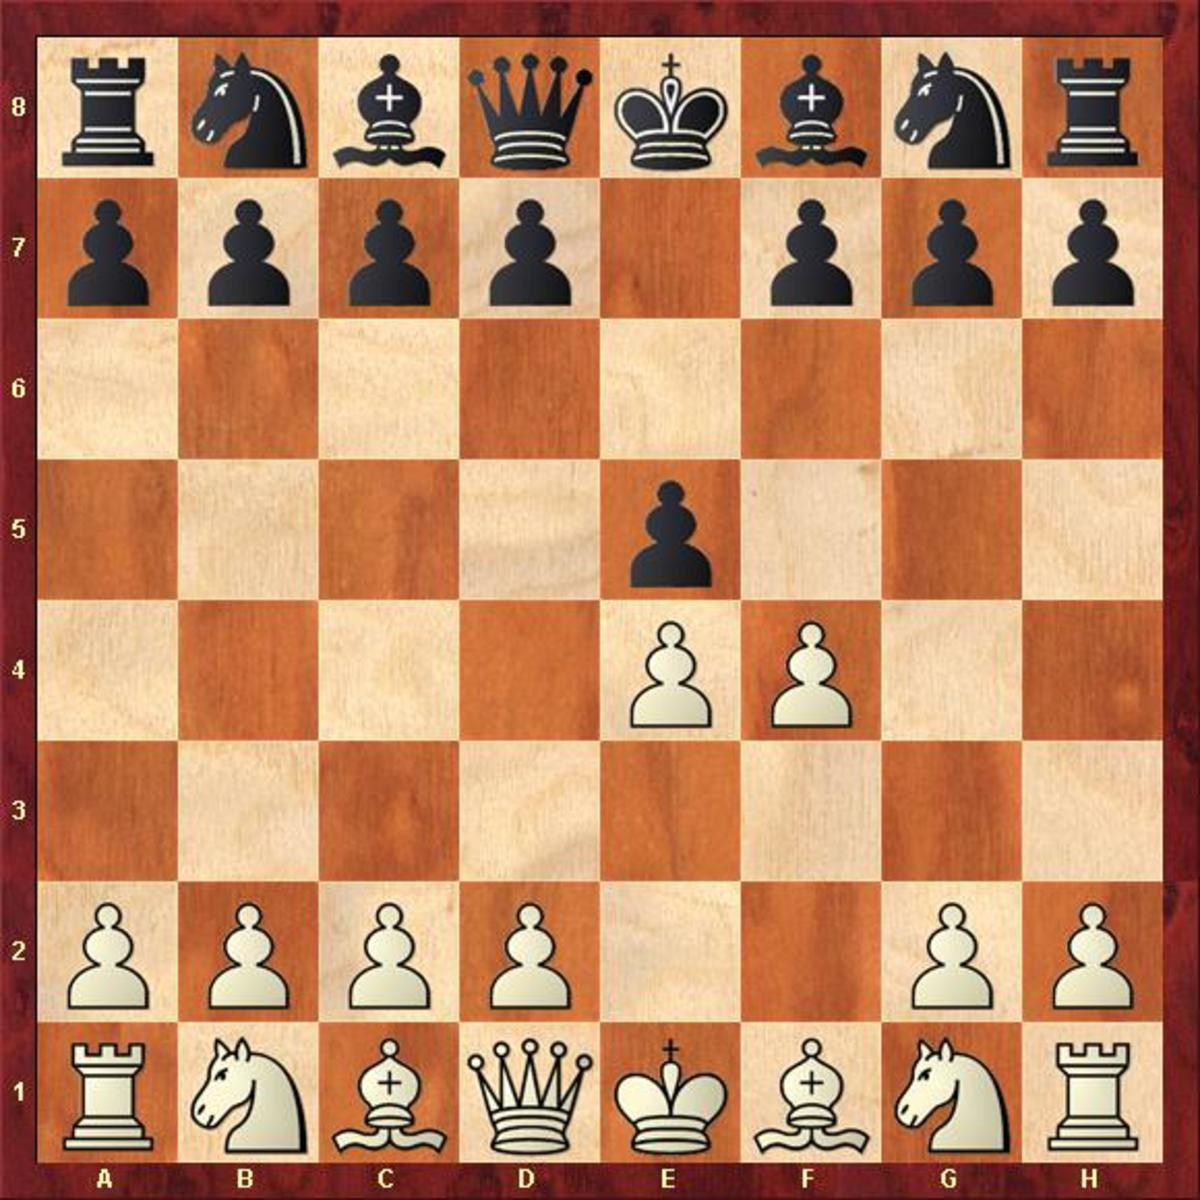 Chess Tactics in the King's Gambit